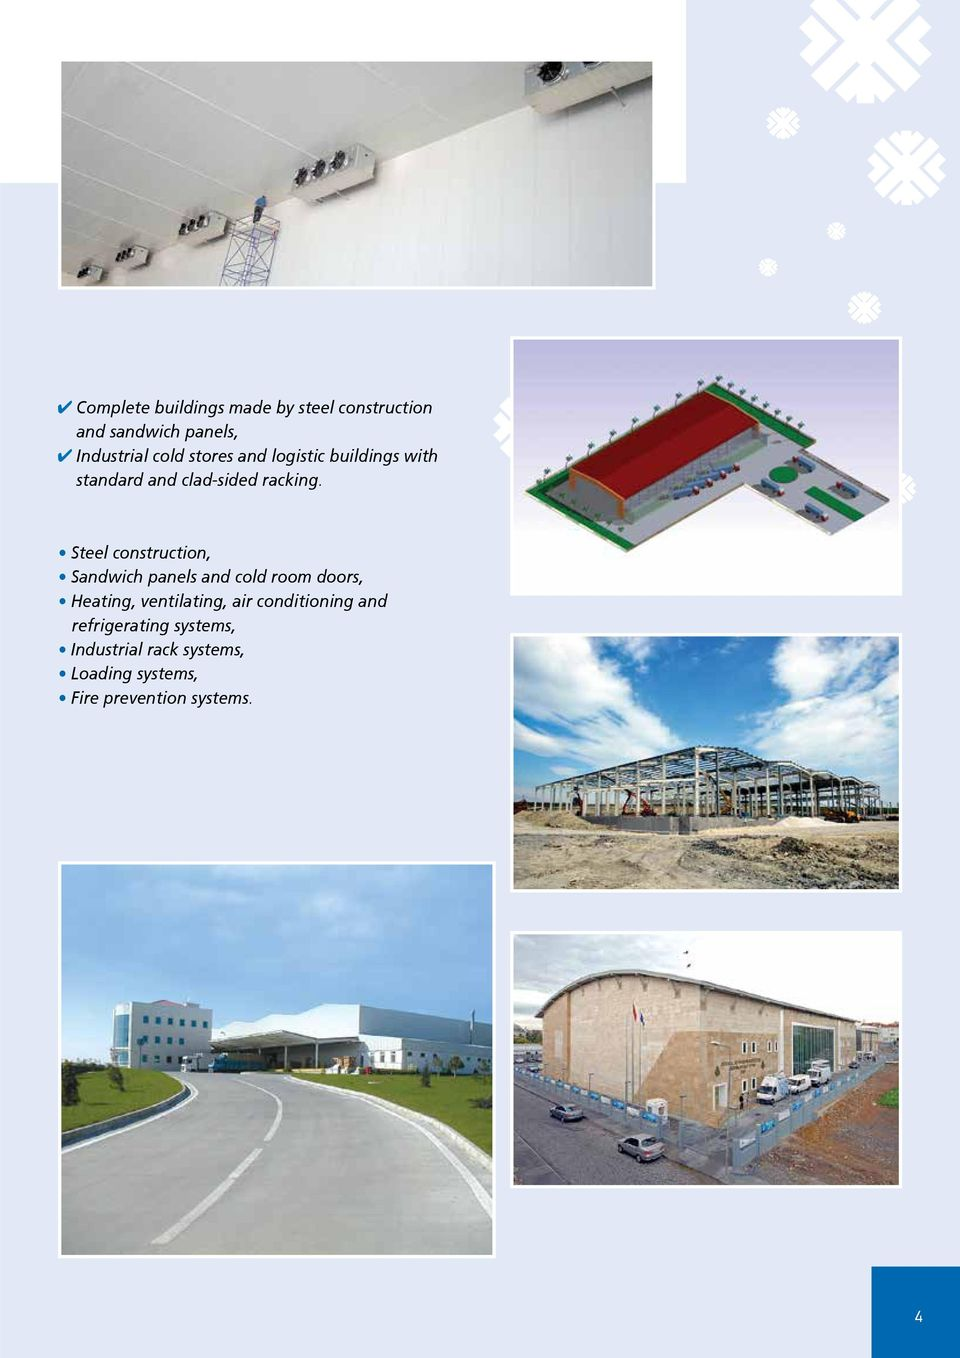 Steel construction, Sandwich panels and cold room doors, Heating, ventilating, air